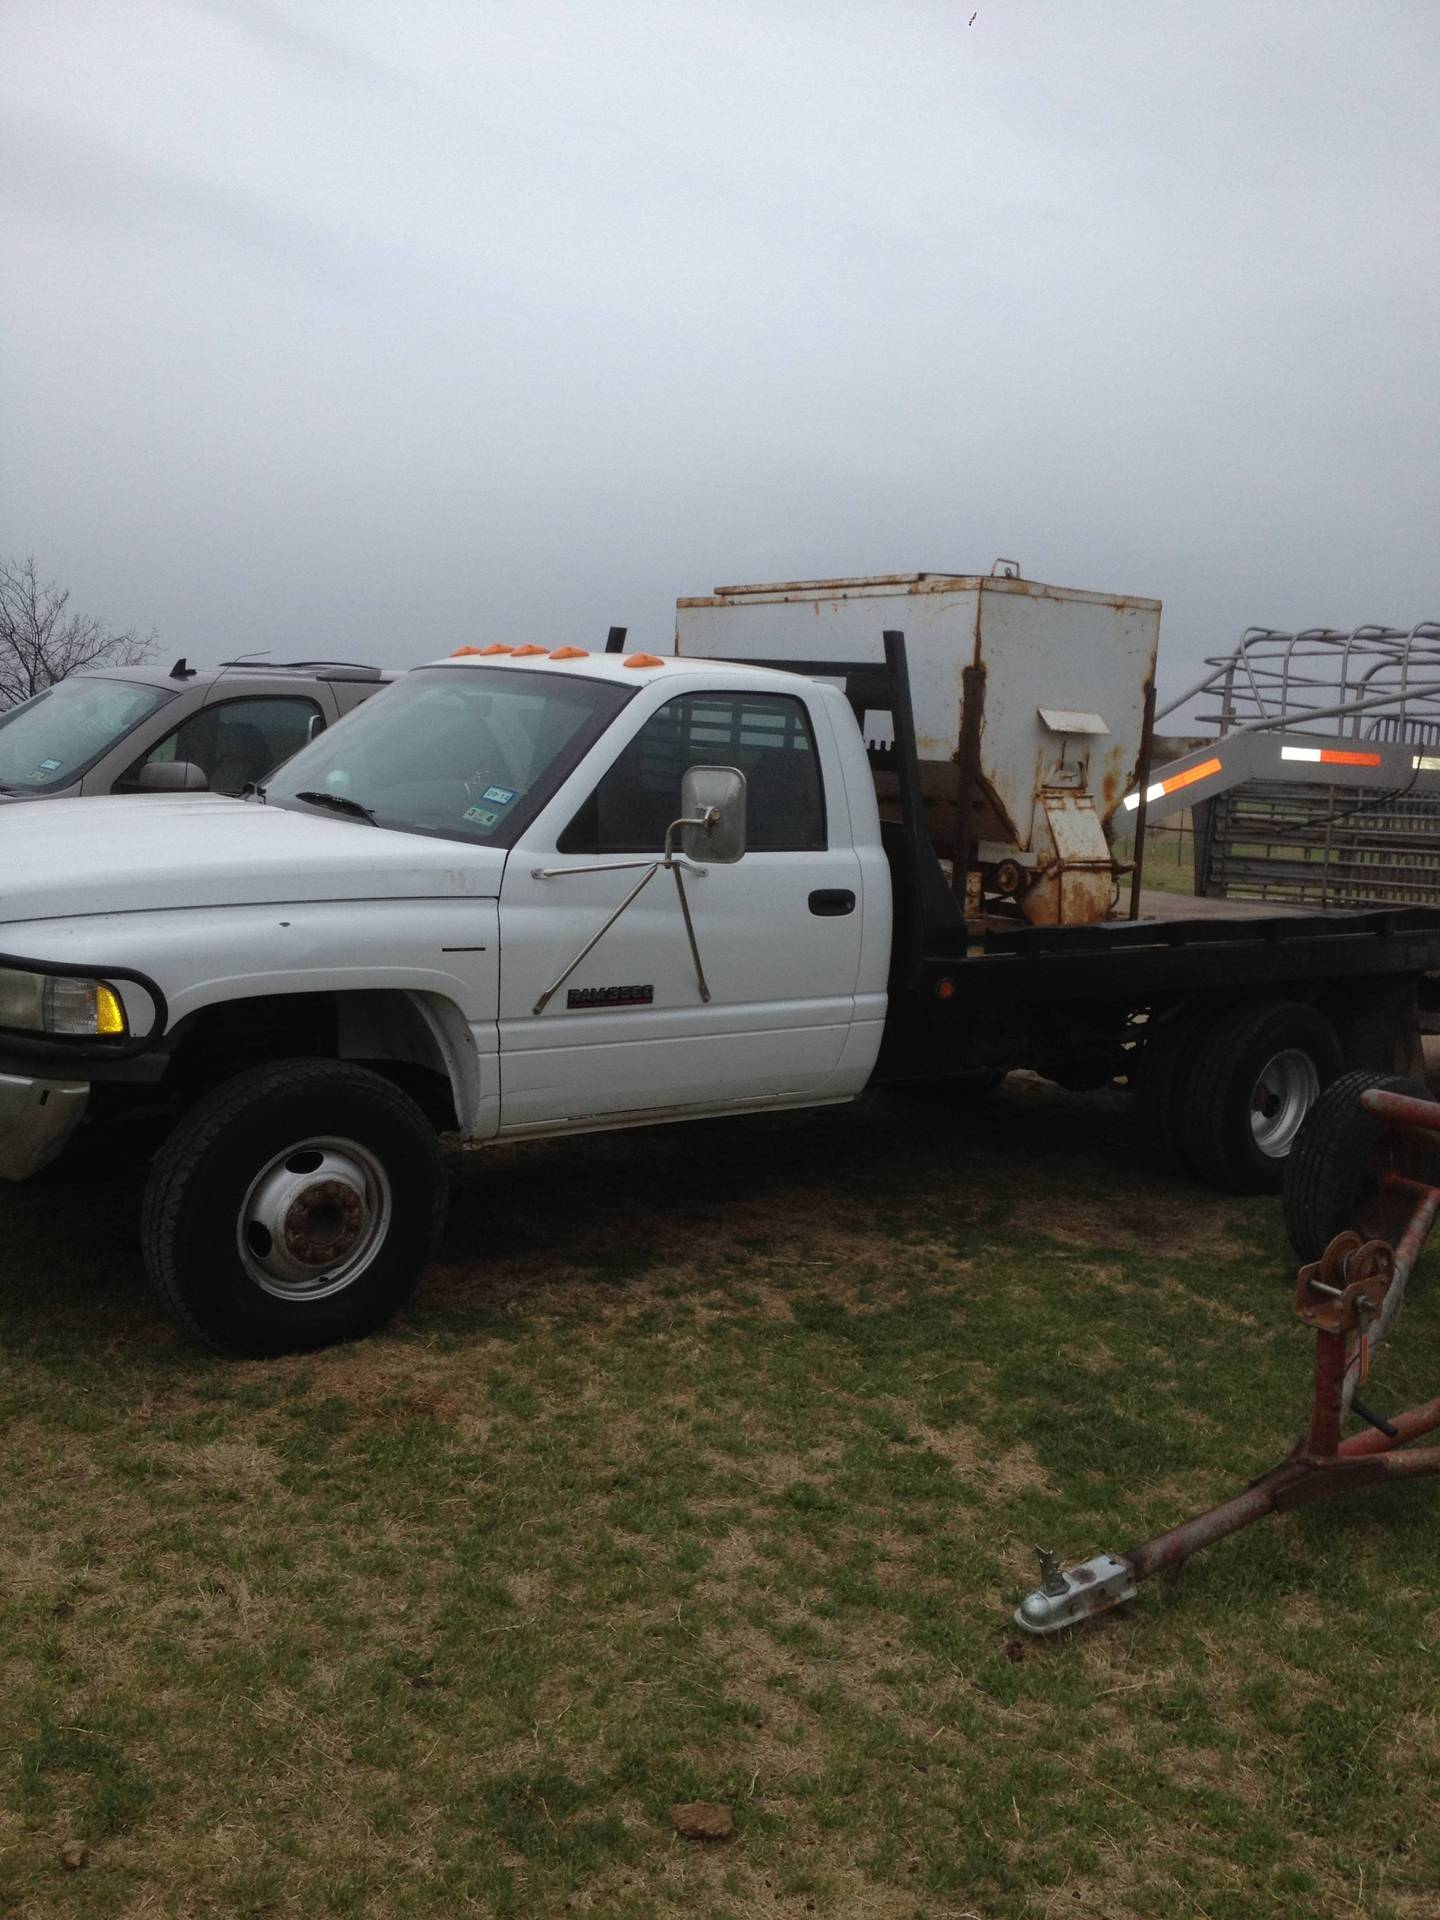 Flatbed For Dodge 3500 Dually : flatbed, dodge, dually, Dodge, Flatbed, Diesel, Dually